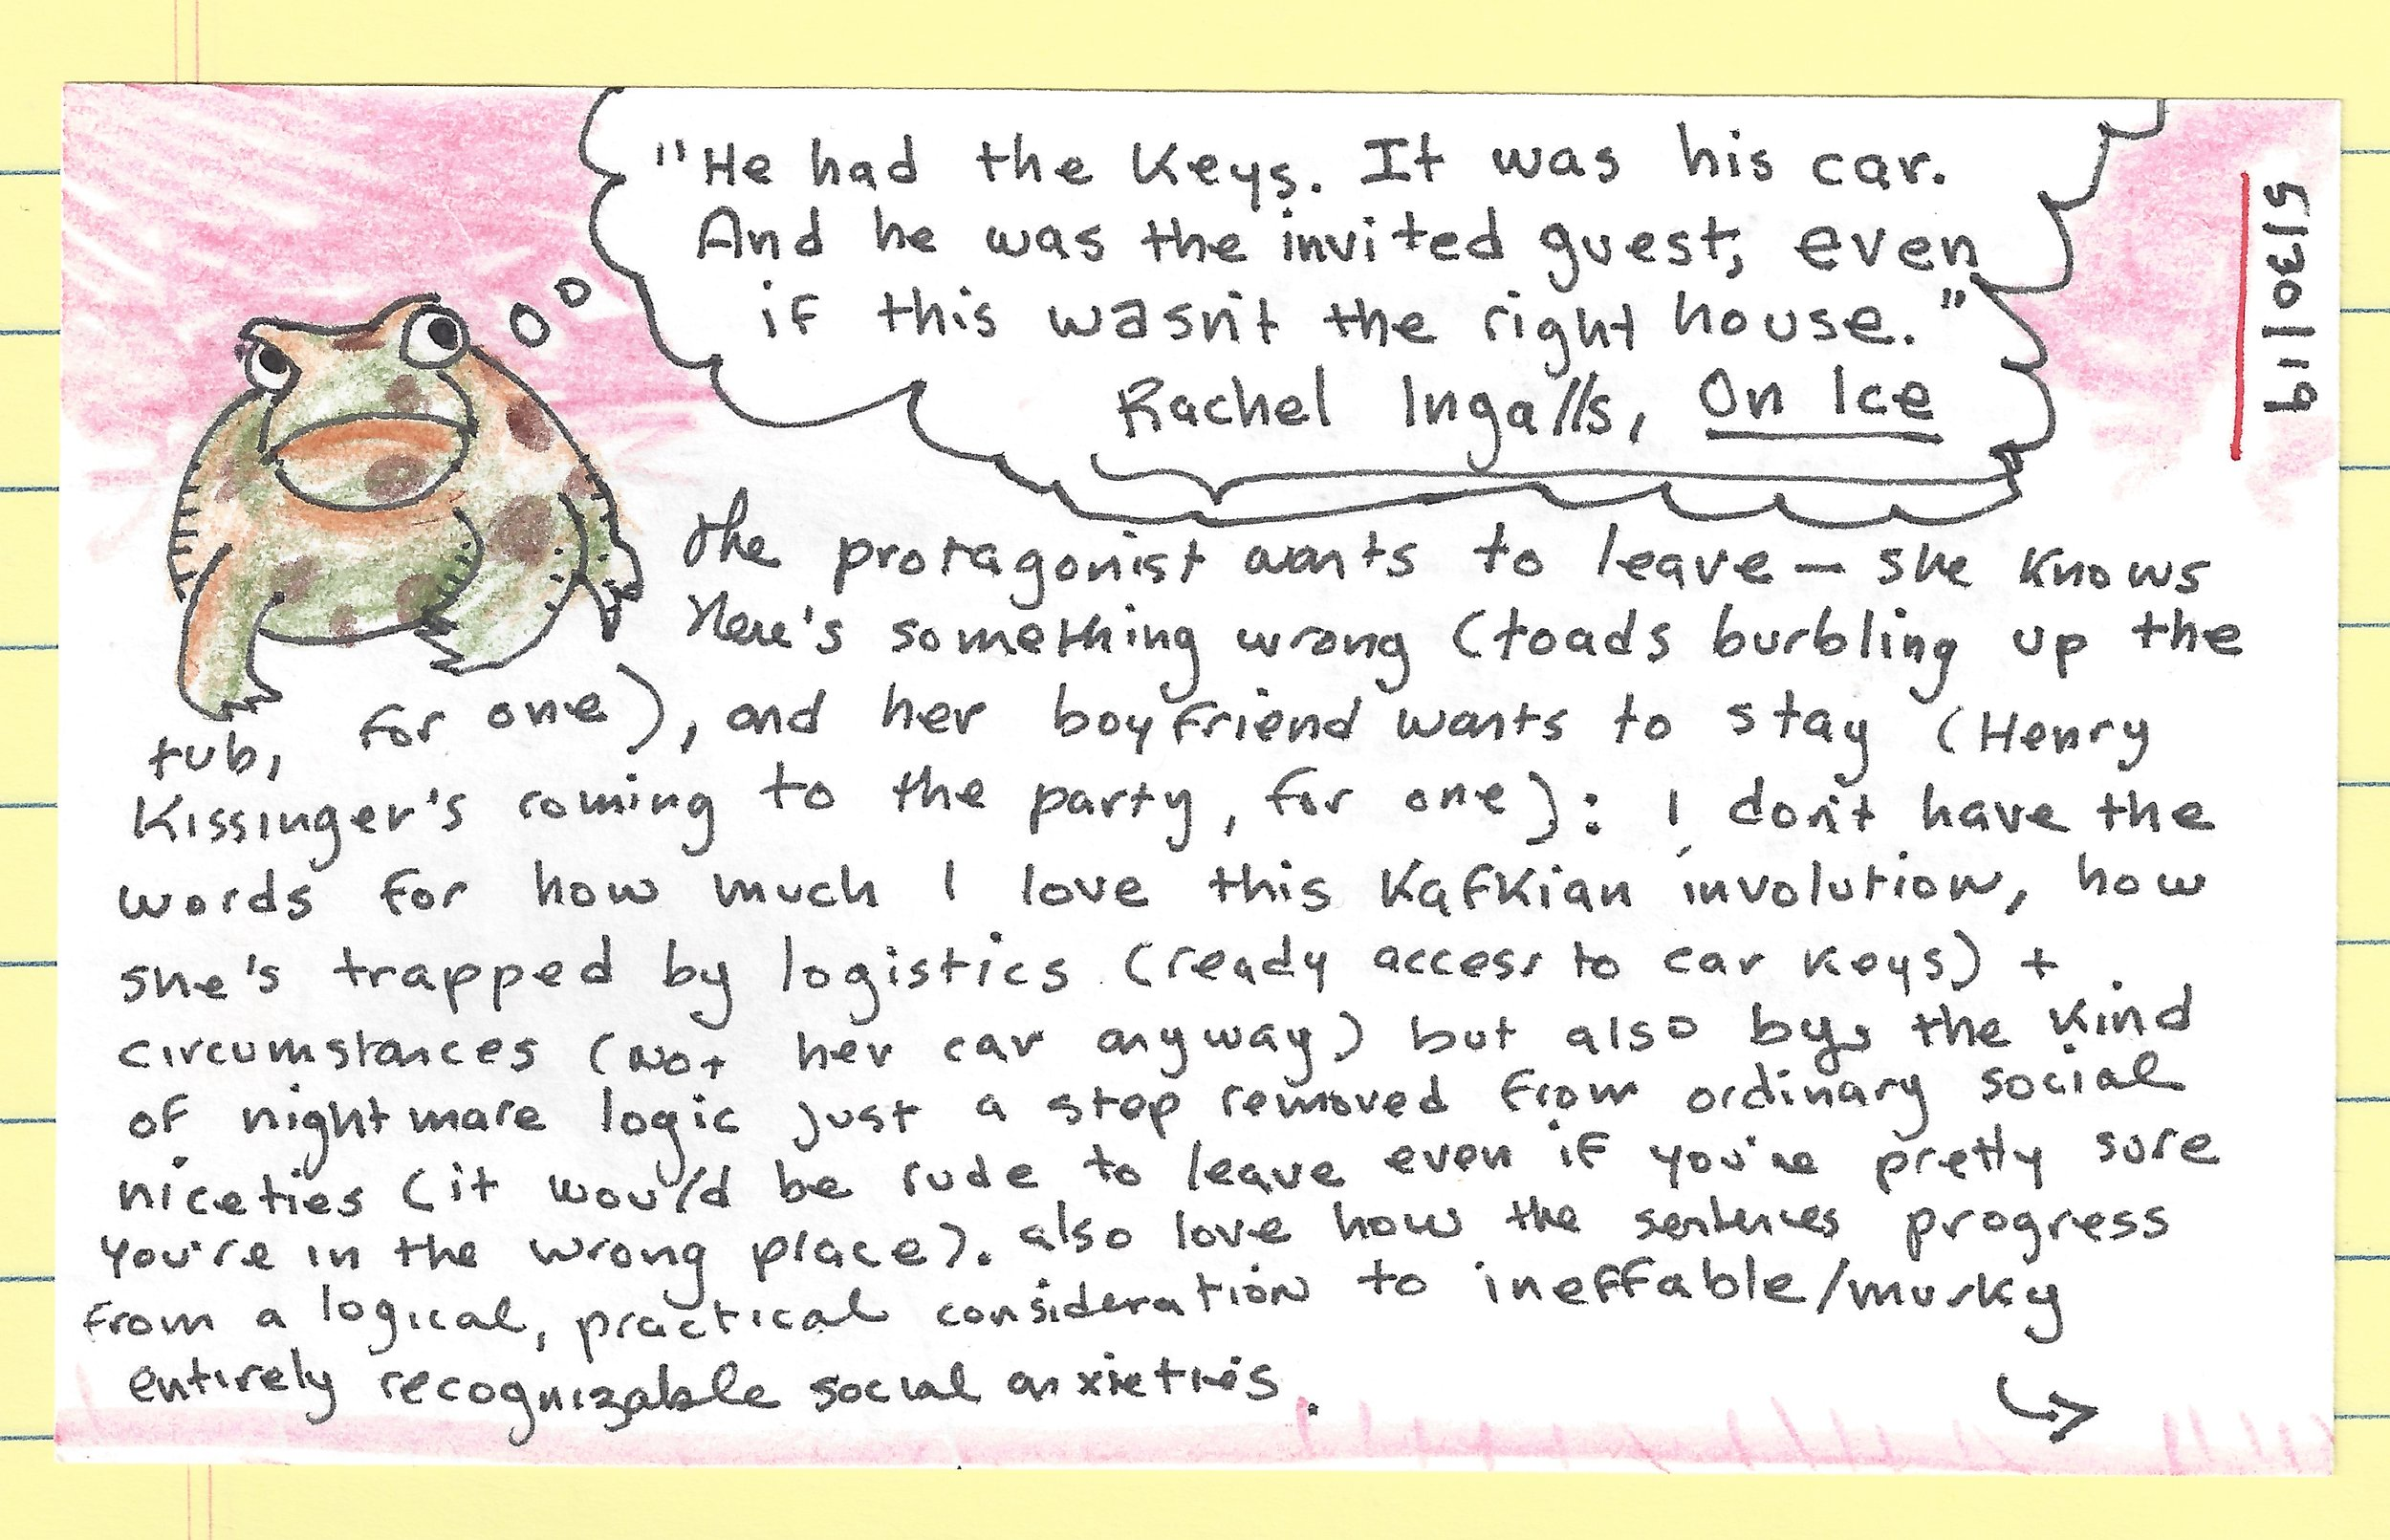 index card on rachel ingalls and nightmare social niceties front.jpg